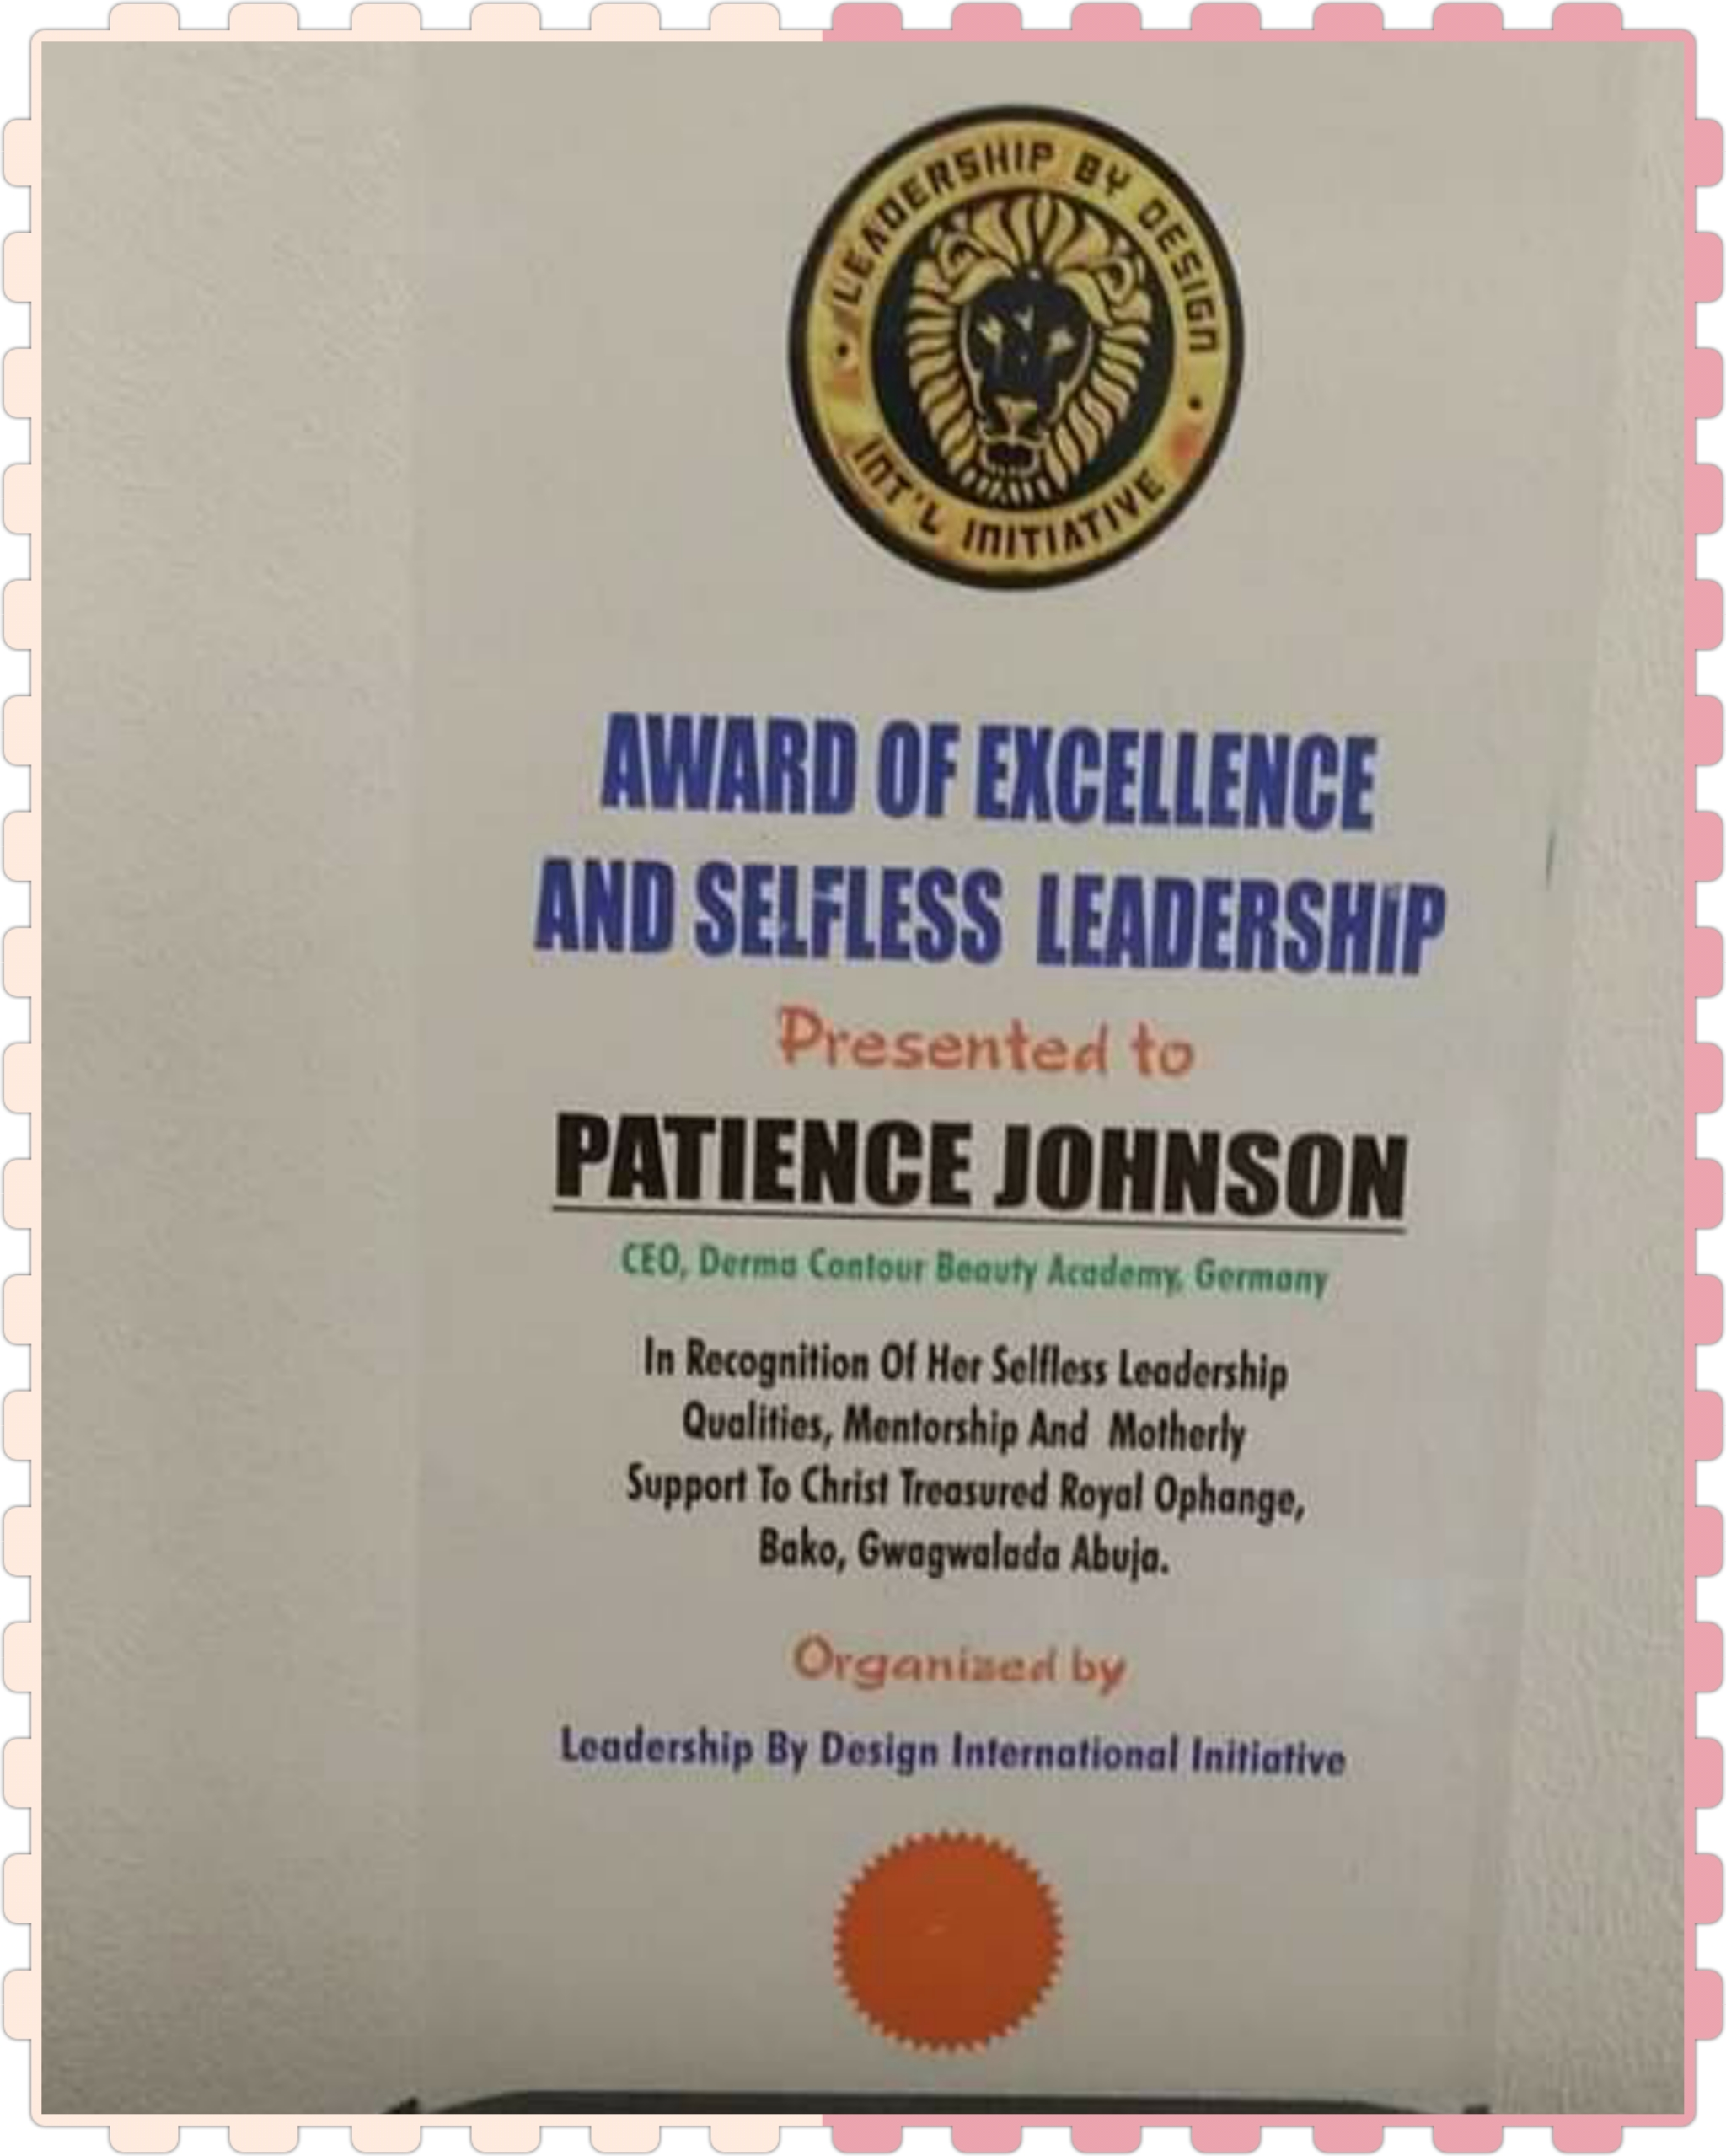 Excellence and Selfless leadership Award